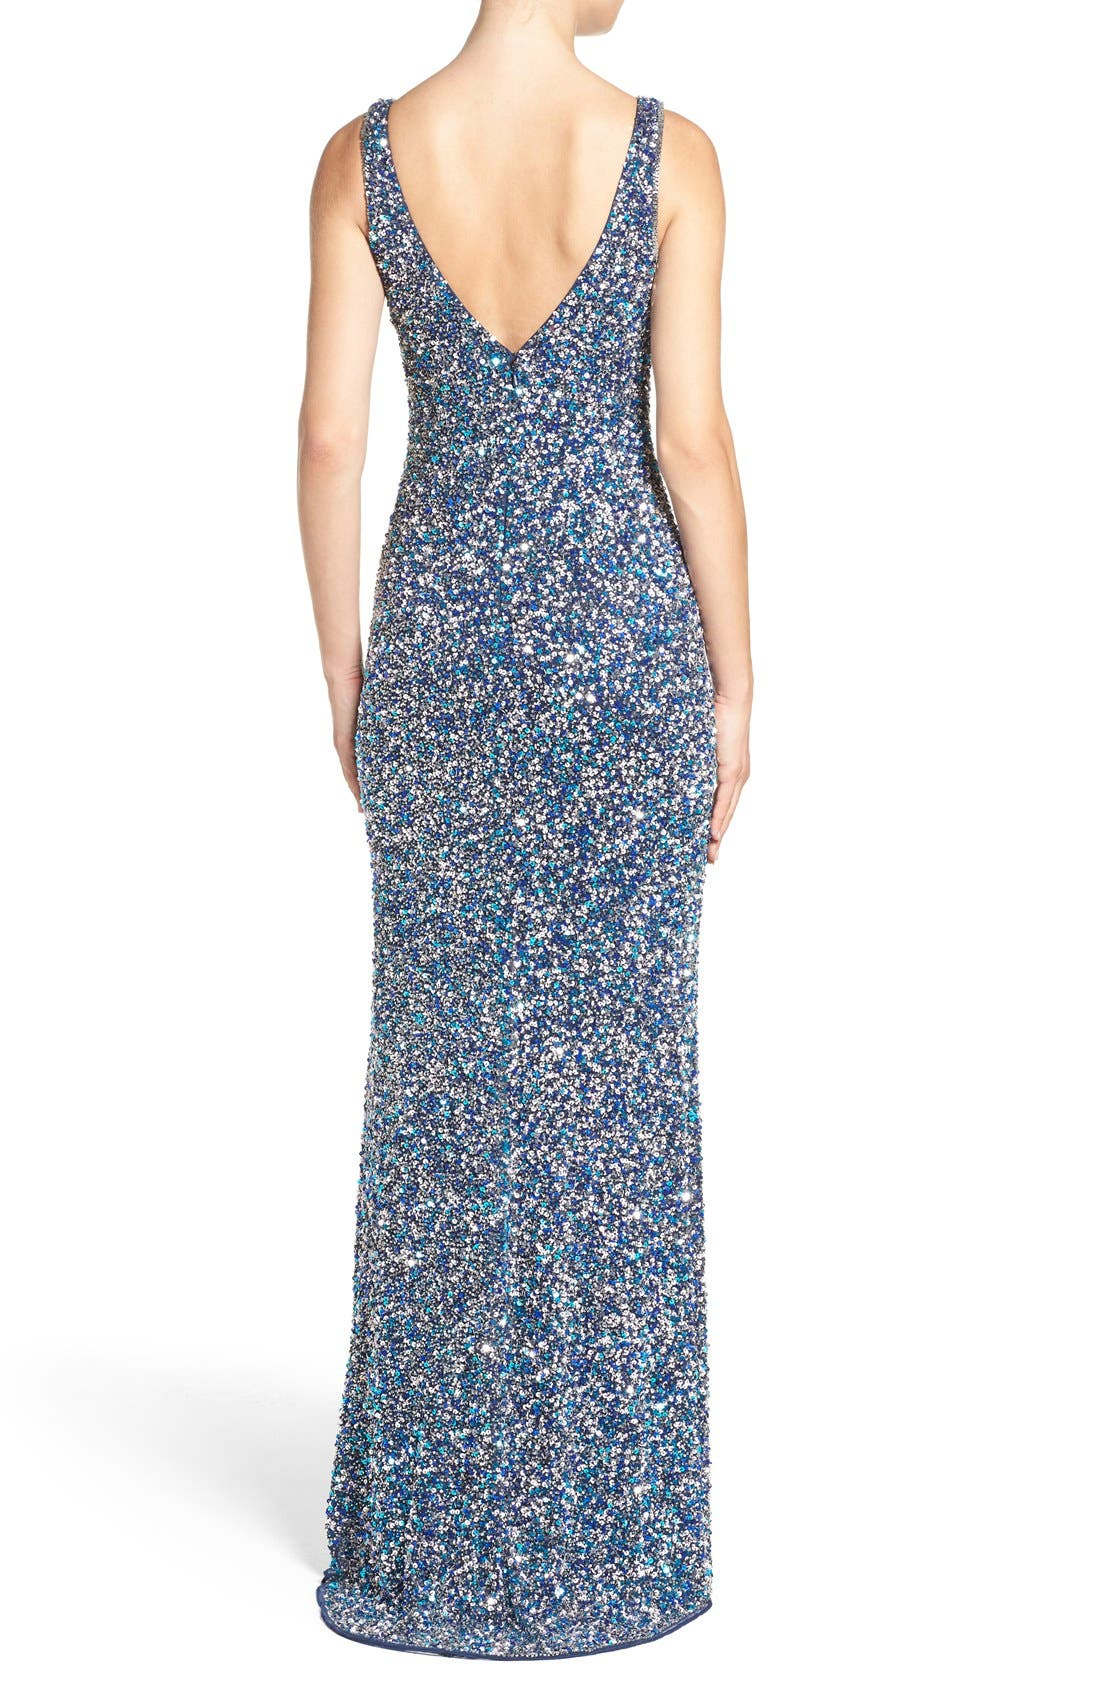 MAC DUGGAL, Sequin Slit Gown, Alternate thumbnail 6, color, NAVY MULTI